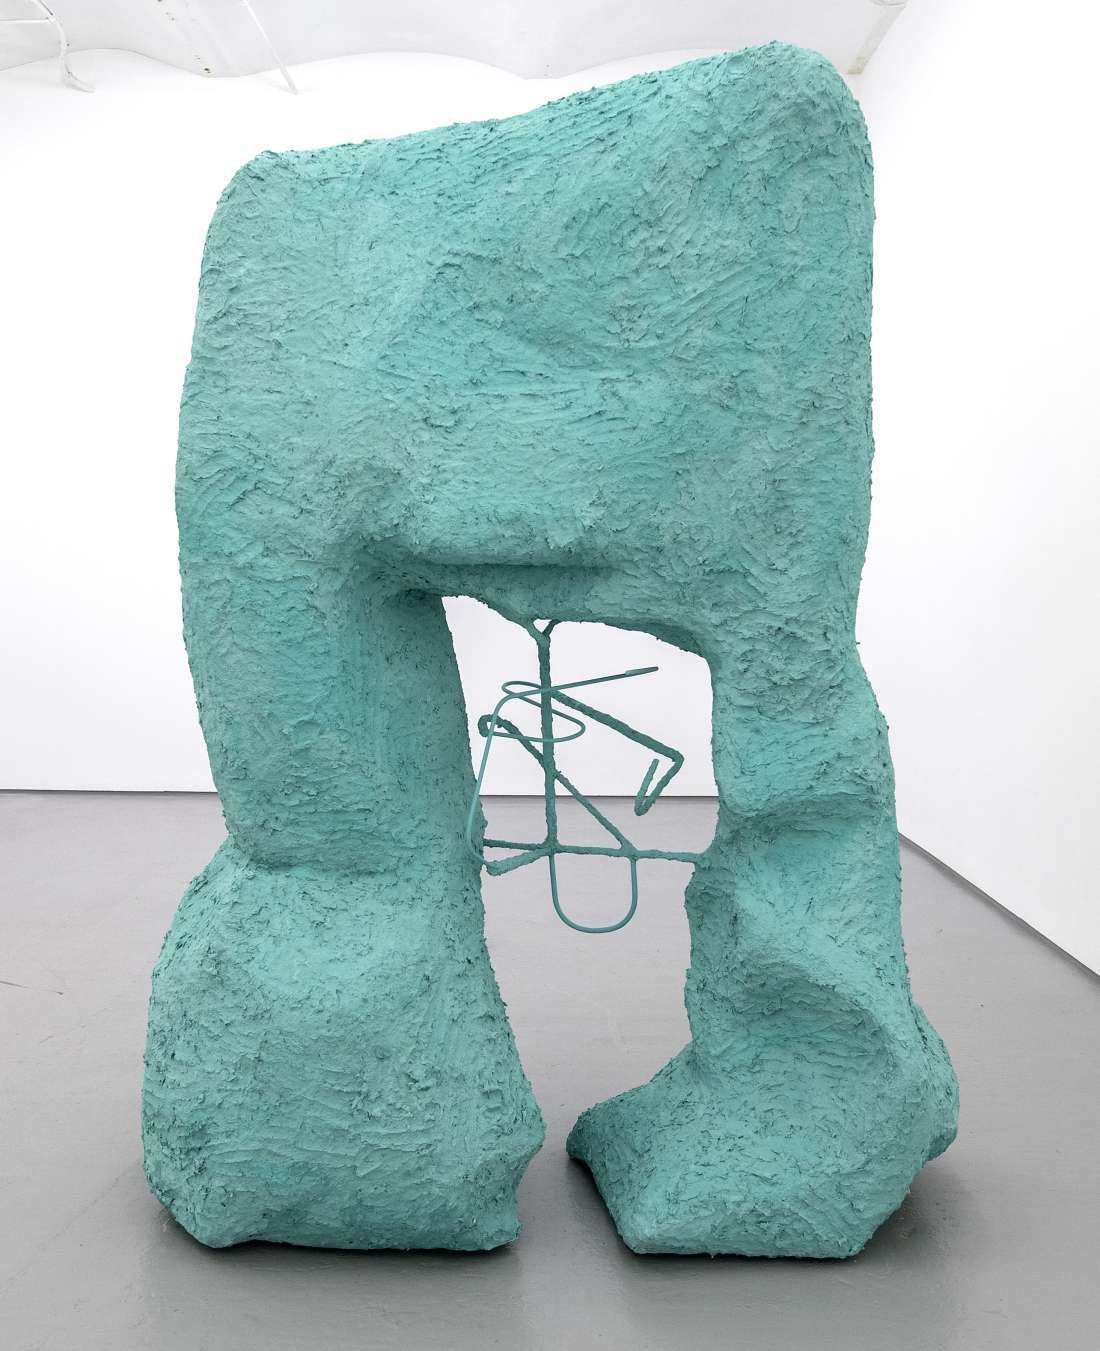 Surface Matters: Giant raw and exposed sculptures by Ellen Hyllemose ...